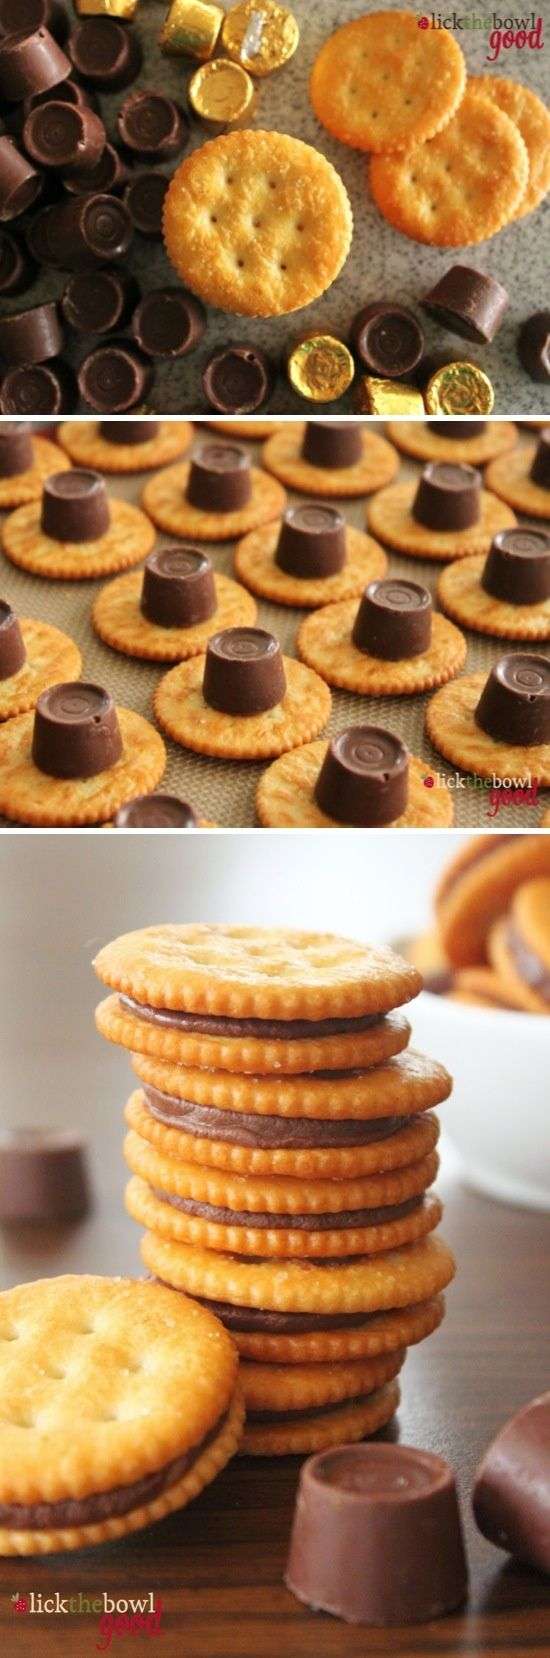 Preheat  to 350 degrees. Rollo Stuffed Ritz Crackers-salty side down, place 1 Rolo / cracker. Bake 3-5 min to melt Rolo, then add another cracker on top and push down a little. Let cool. Sweet